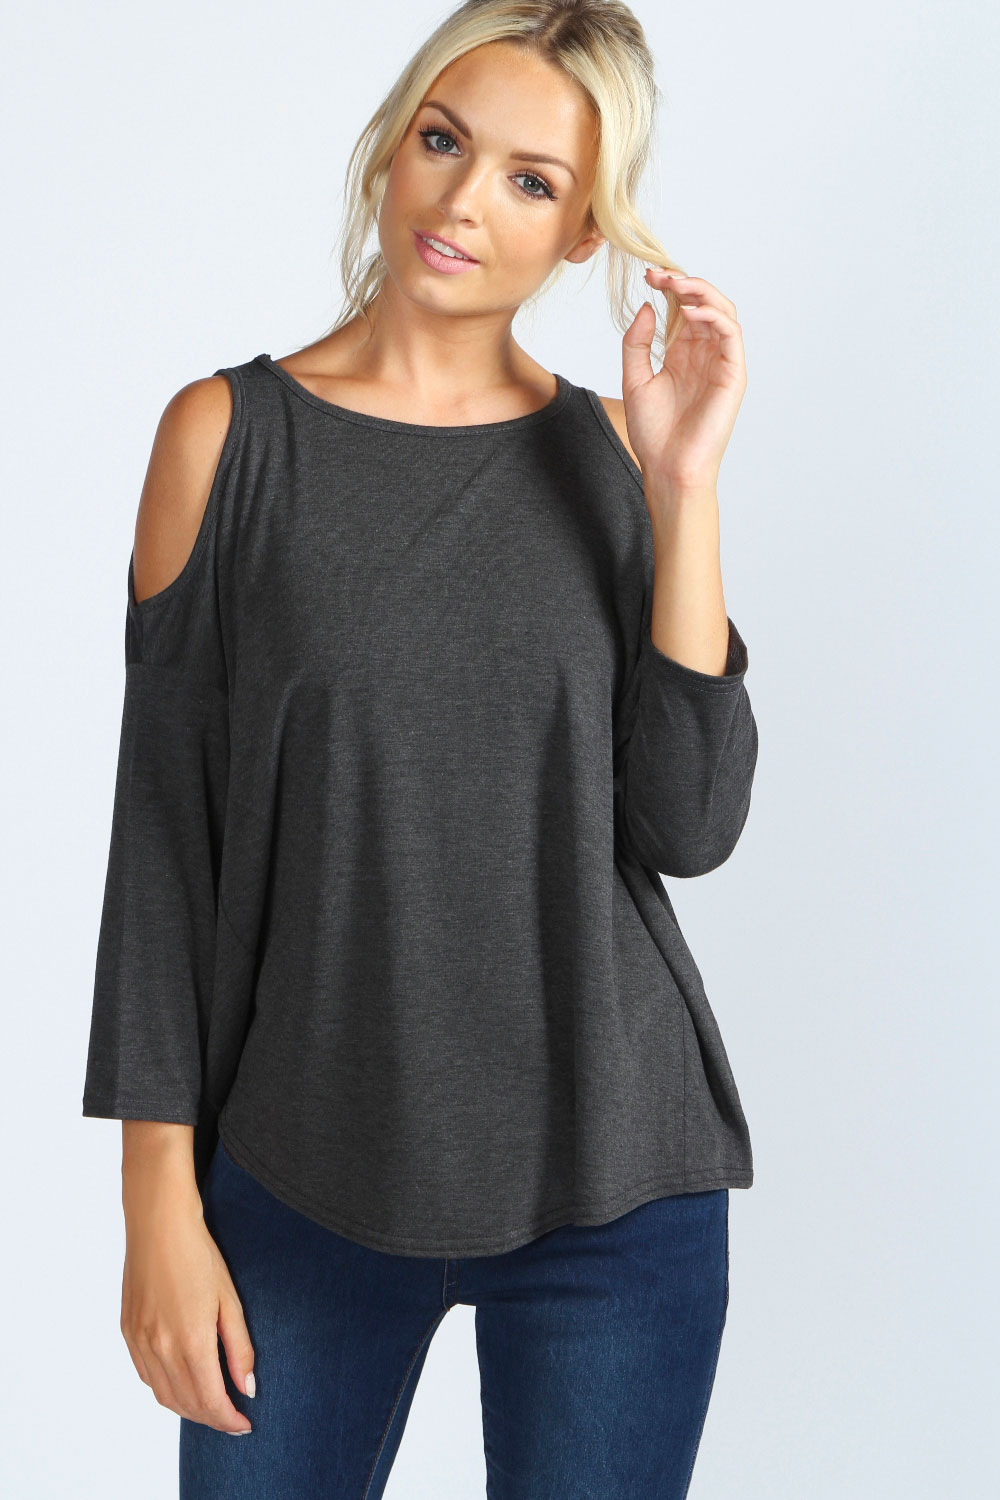 A cut-out shoulder is sometimes so dramatic that the shirt appears to be a tank top with sleeves that begin farther down the arm. If you are feeling more daring, you can even choose a shirt that has open shoulders and additional slashes down the length of the sleeves.